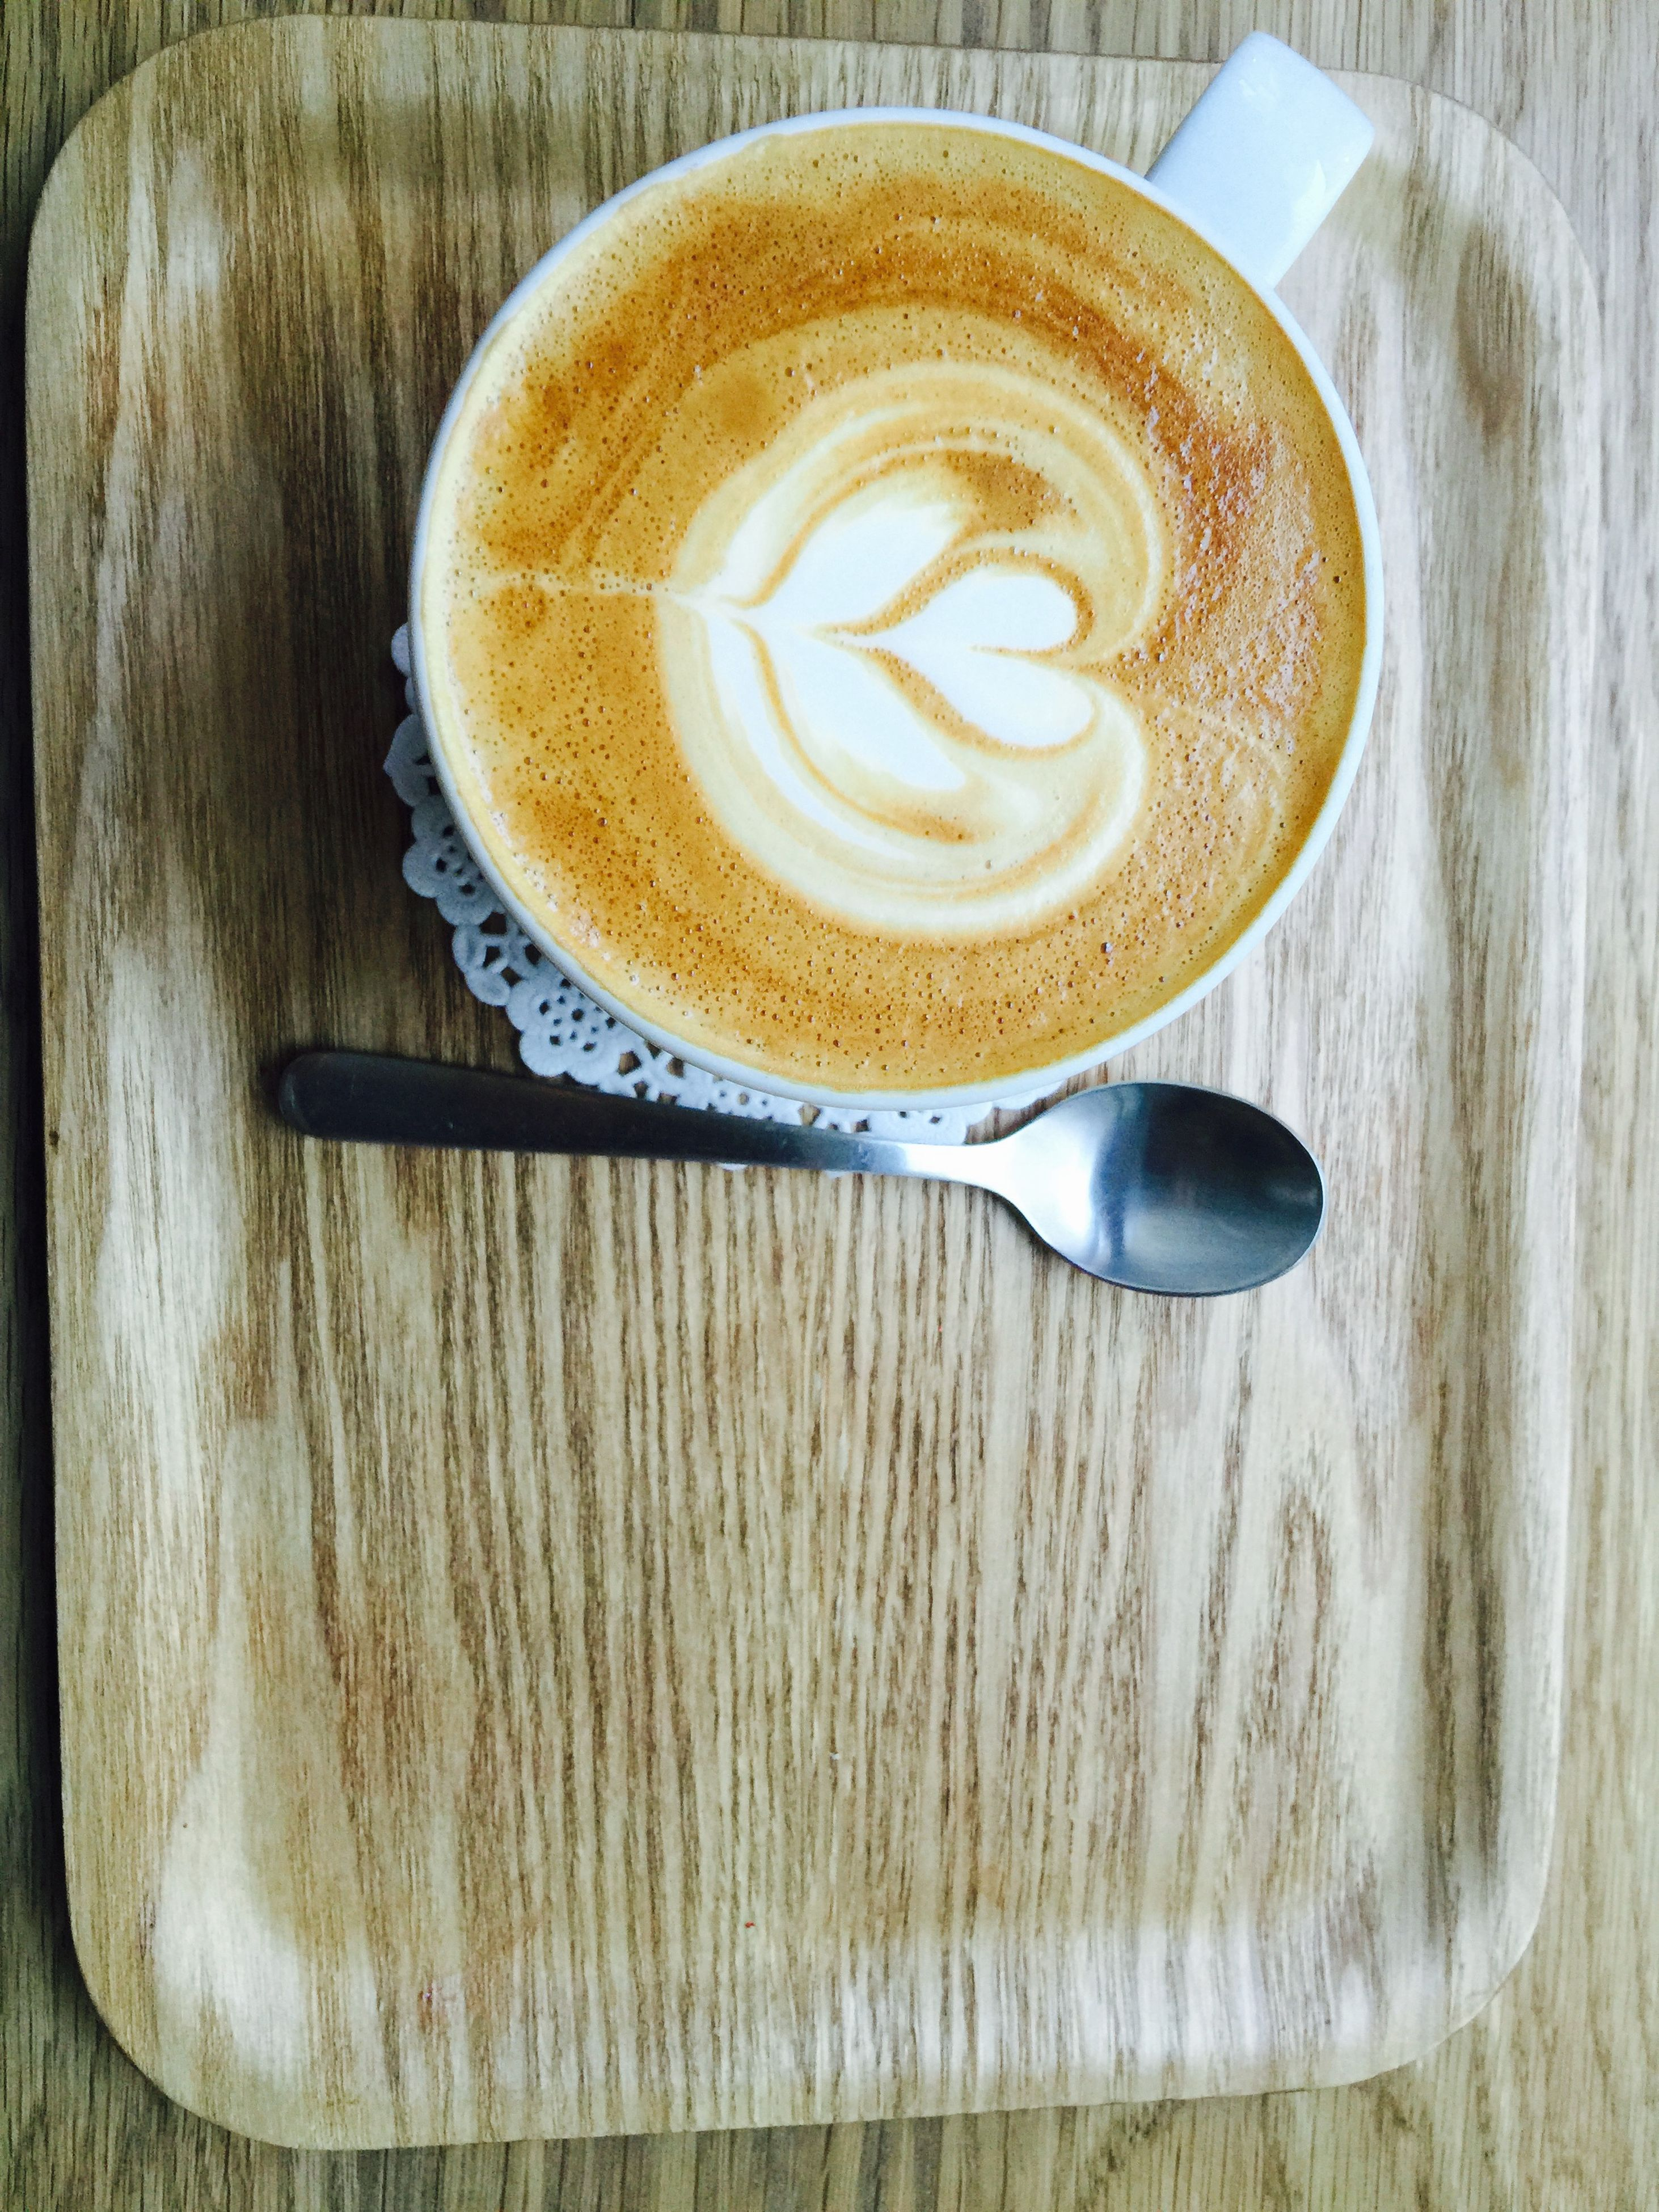 food and drink, coffee cup, table, coffee - drink, drink, refreshment, indoors, still life, saucer, frothy drink, freshness, high angle view, cappuccino, froth art, coffee, directly above, spoon, wood - material, close-up, heart shape